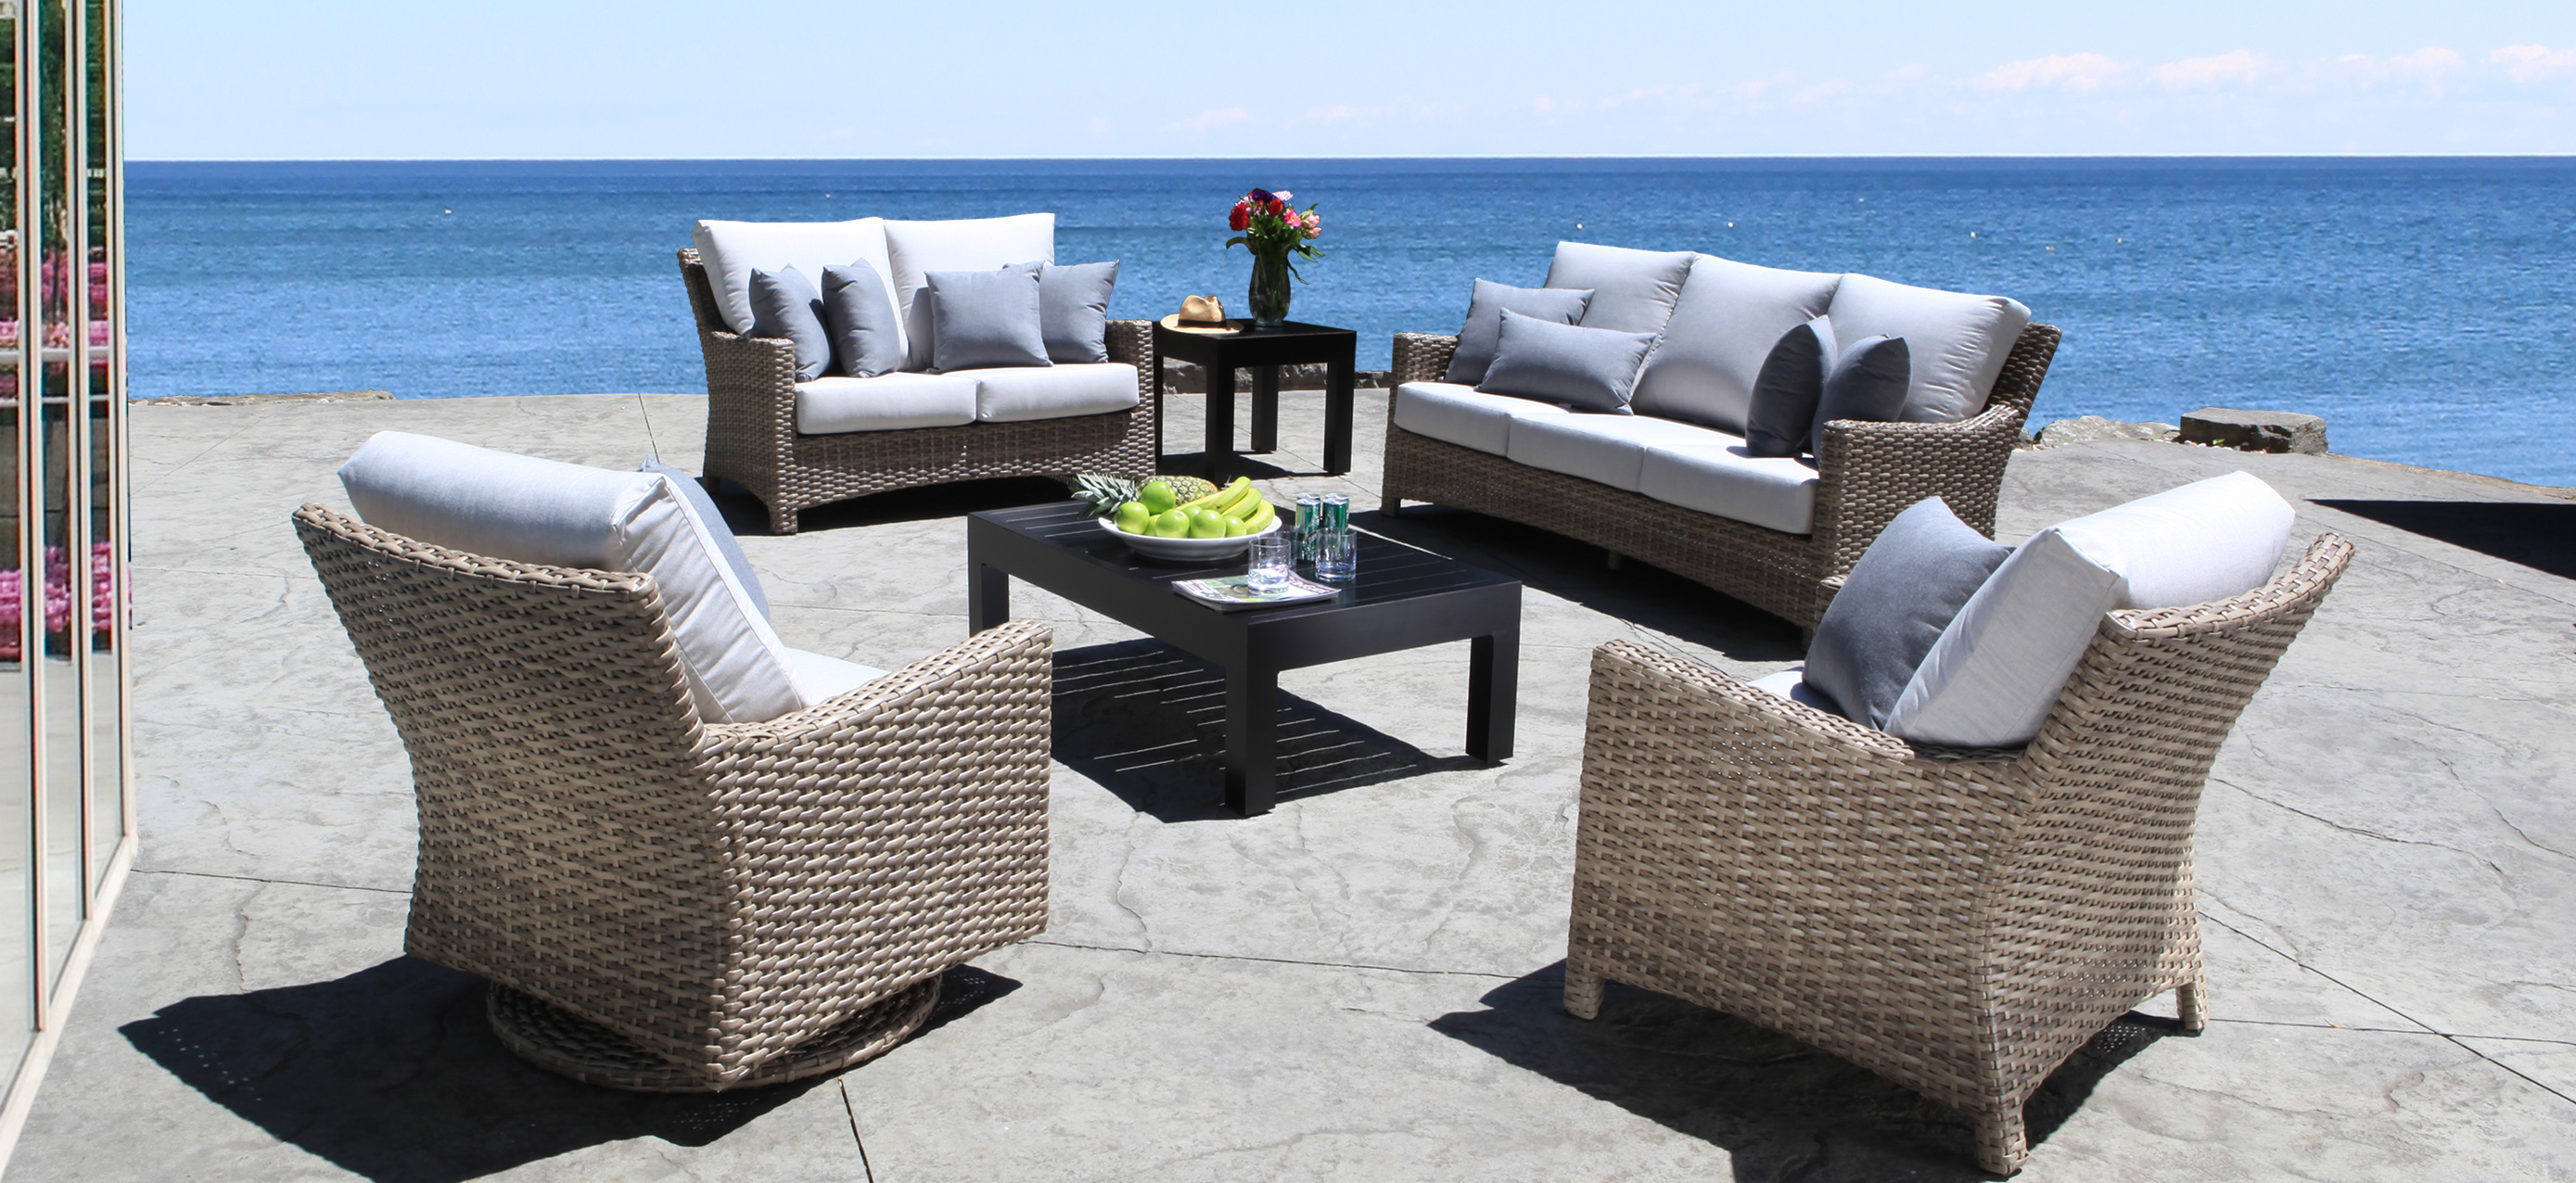 wicker at lawn otsldtp enjoy having creative bellissimainteriors furniture sets your design outdoor patio fantastic ideas